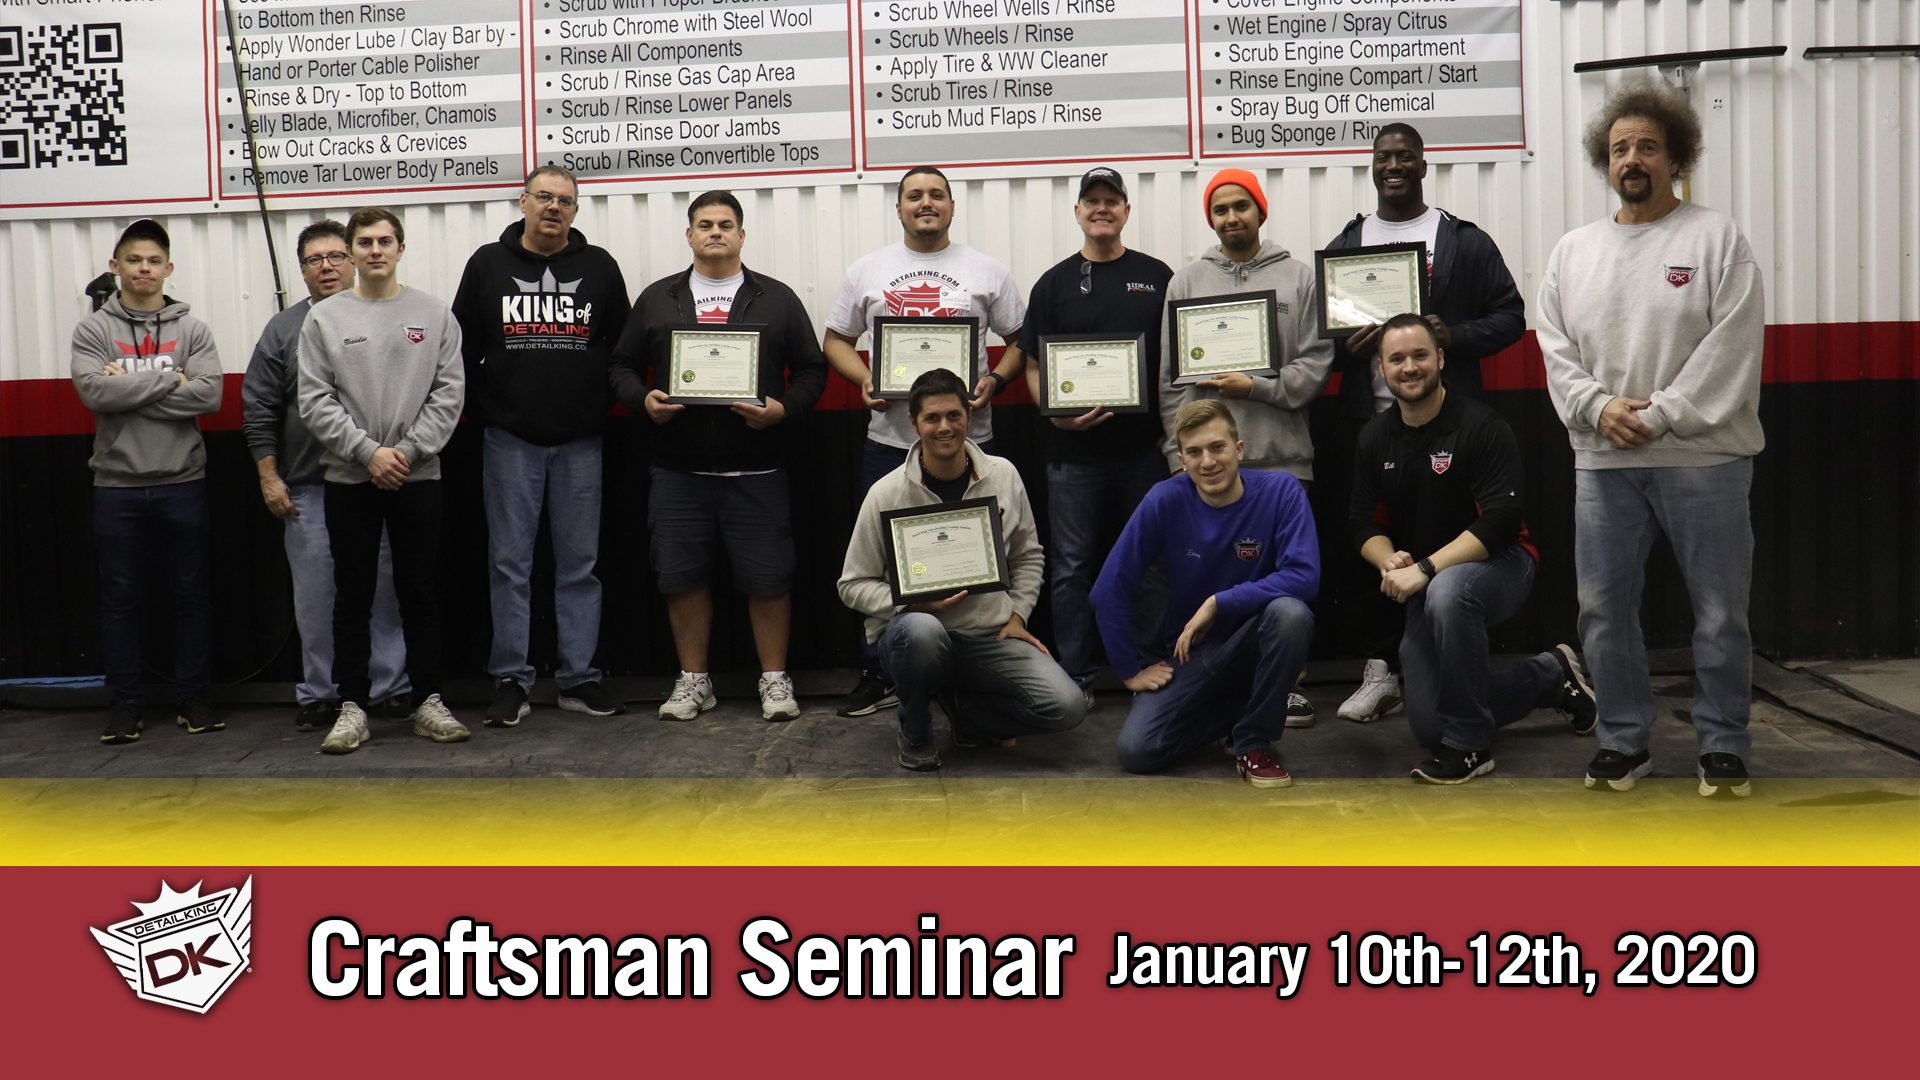 January 2020 Craftsman Seminar